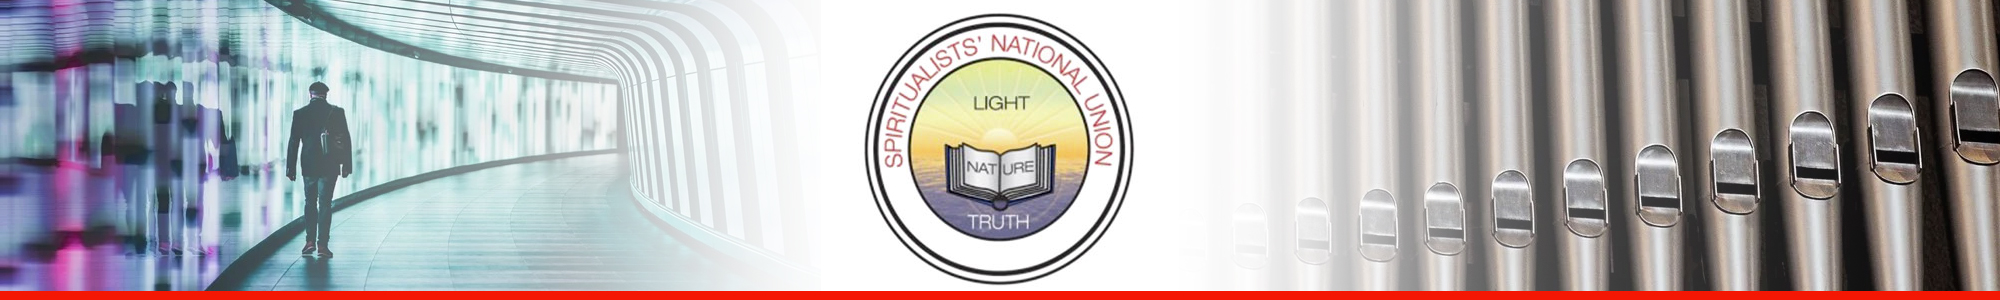 The Spiritualists' National Union